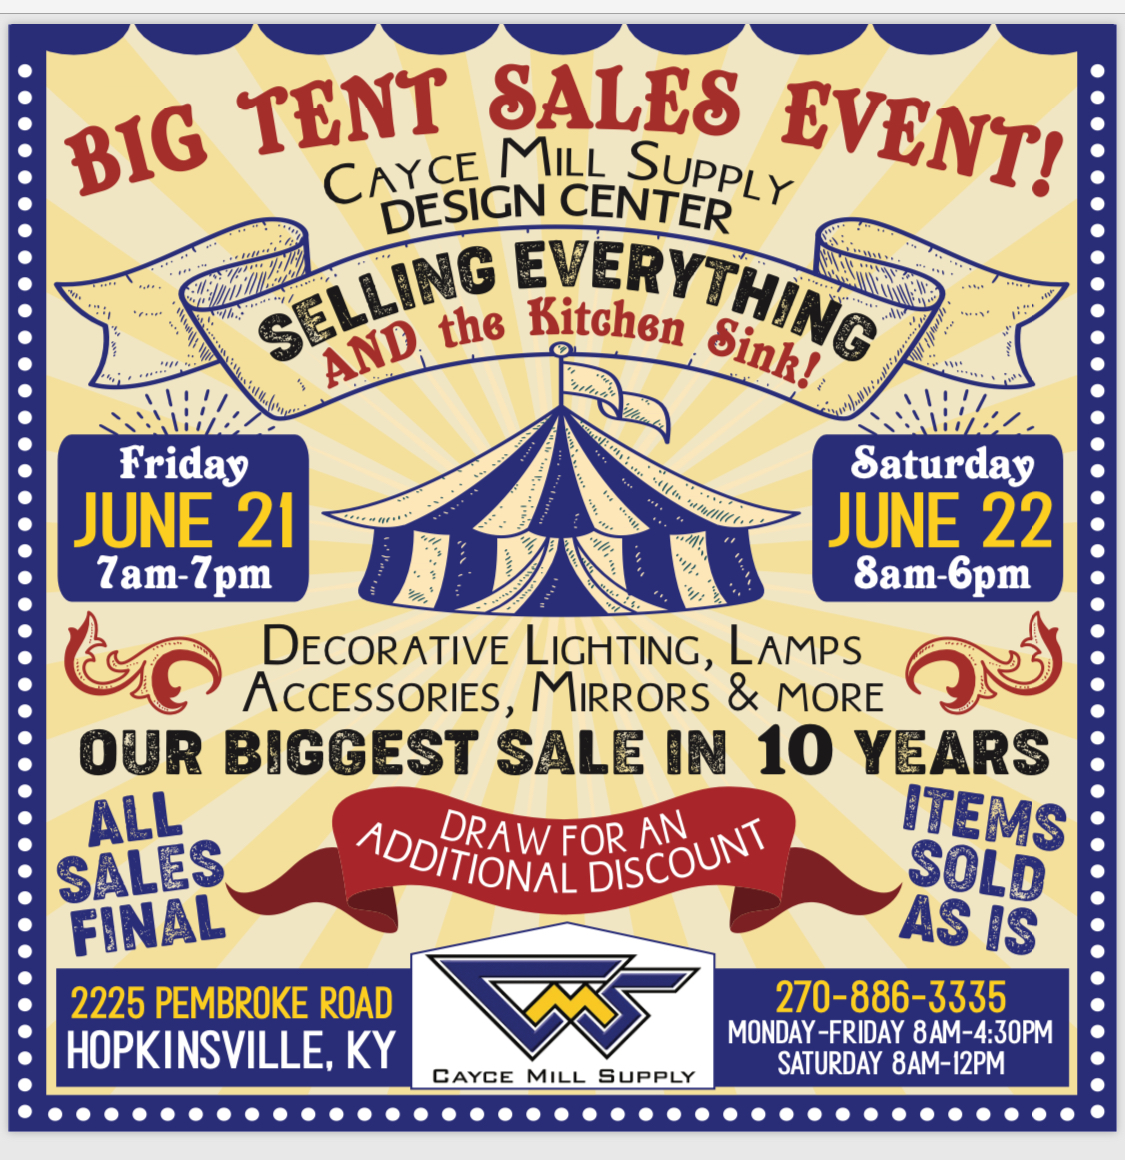 BIG TENT SALE EVENT